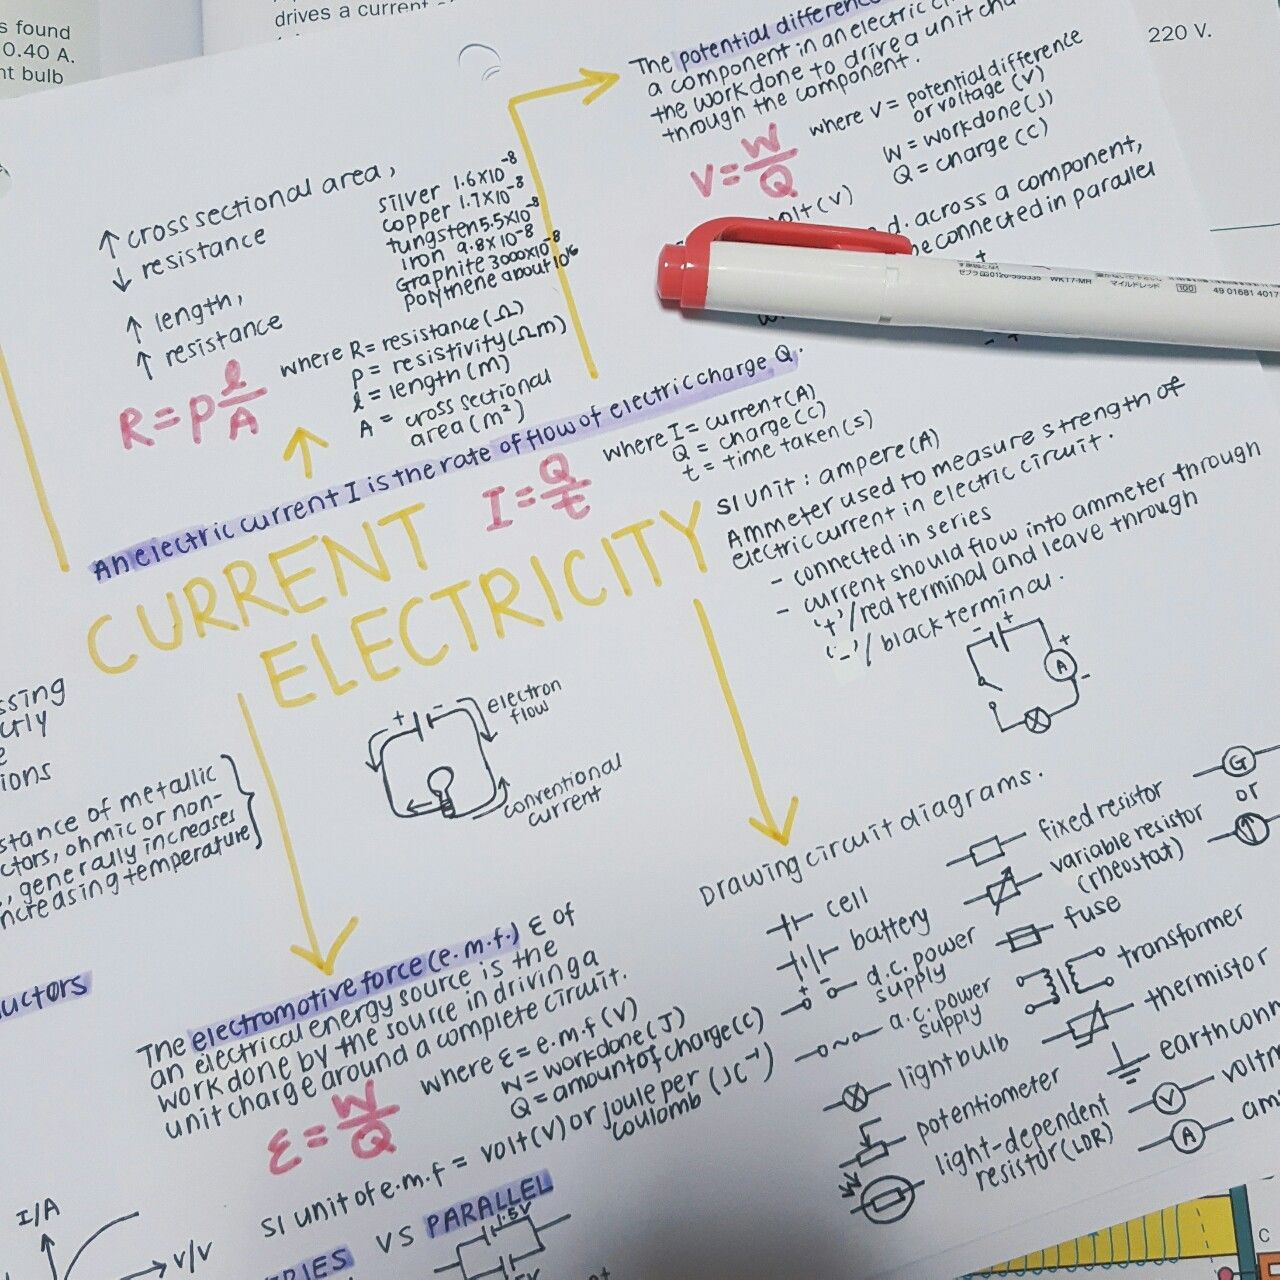 Coffeeandpen Still Working On My Physics Theres School Tmr But Ldr Circuit Diagram Im So Tired And I Dont Want To Get Back Test Results Either